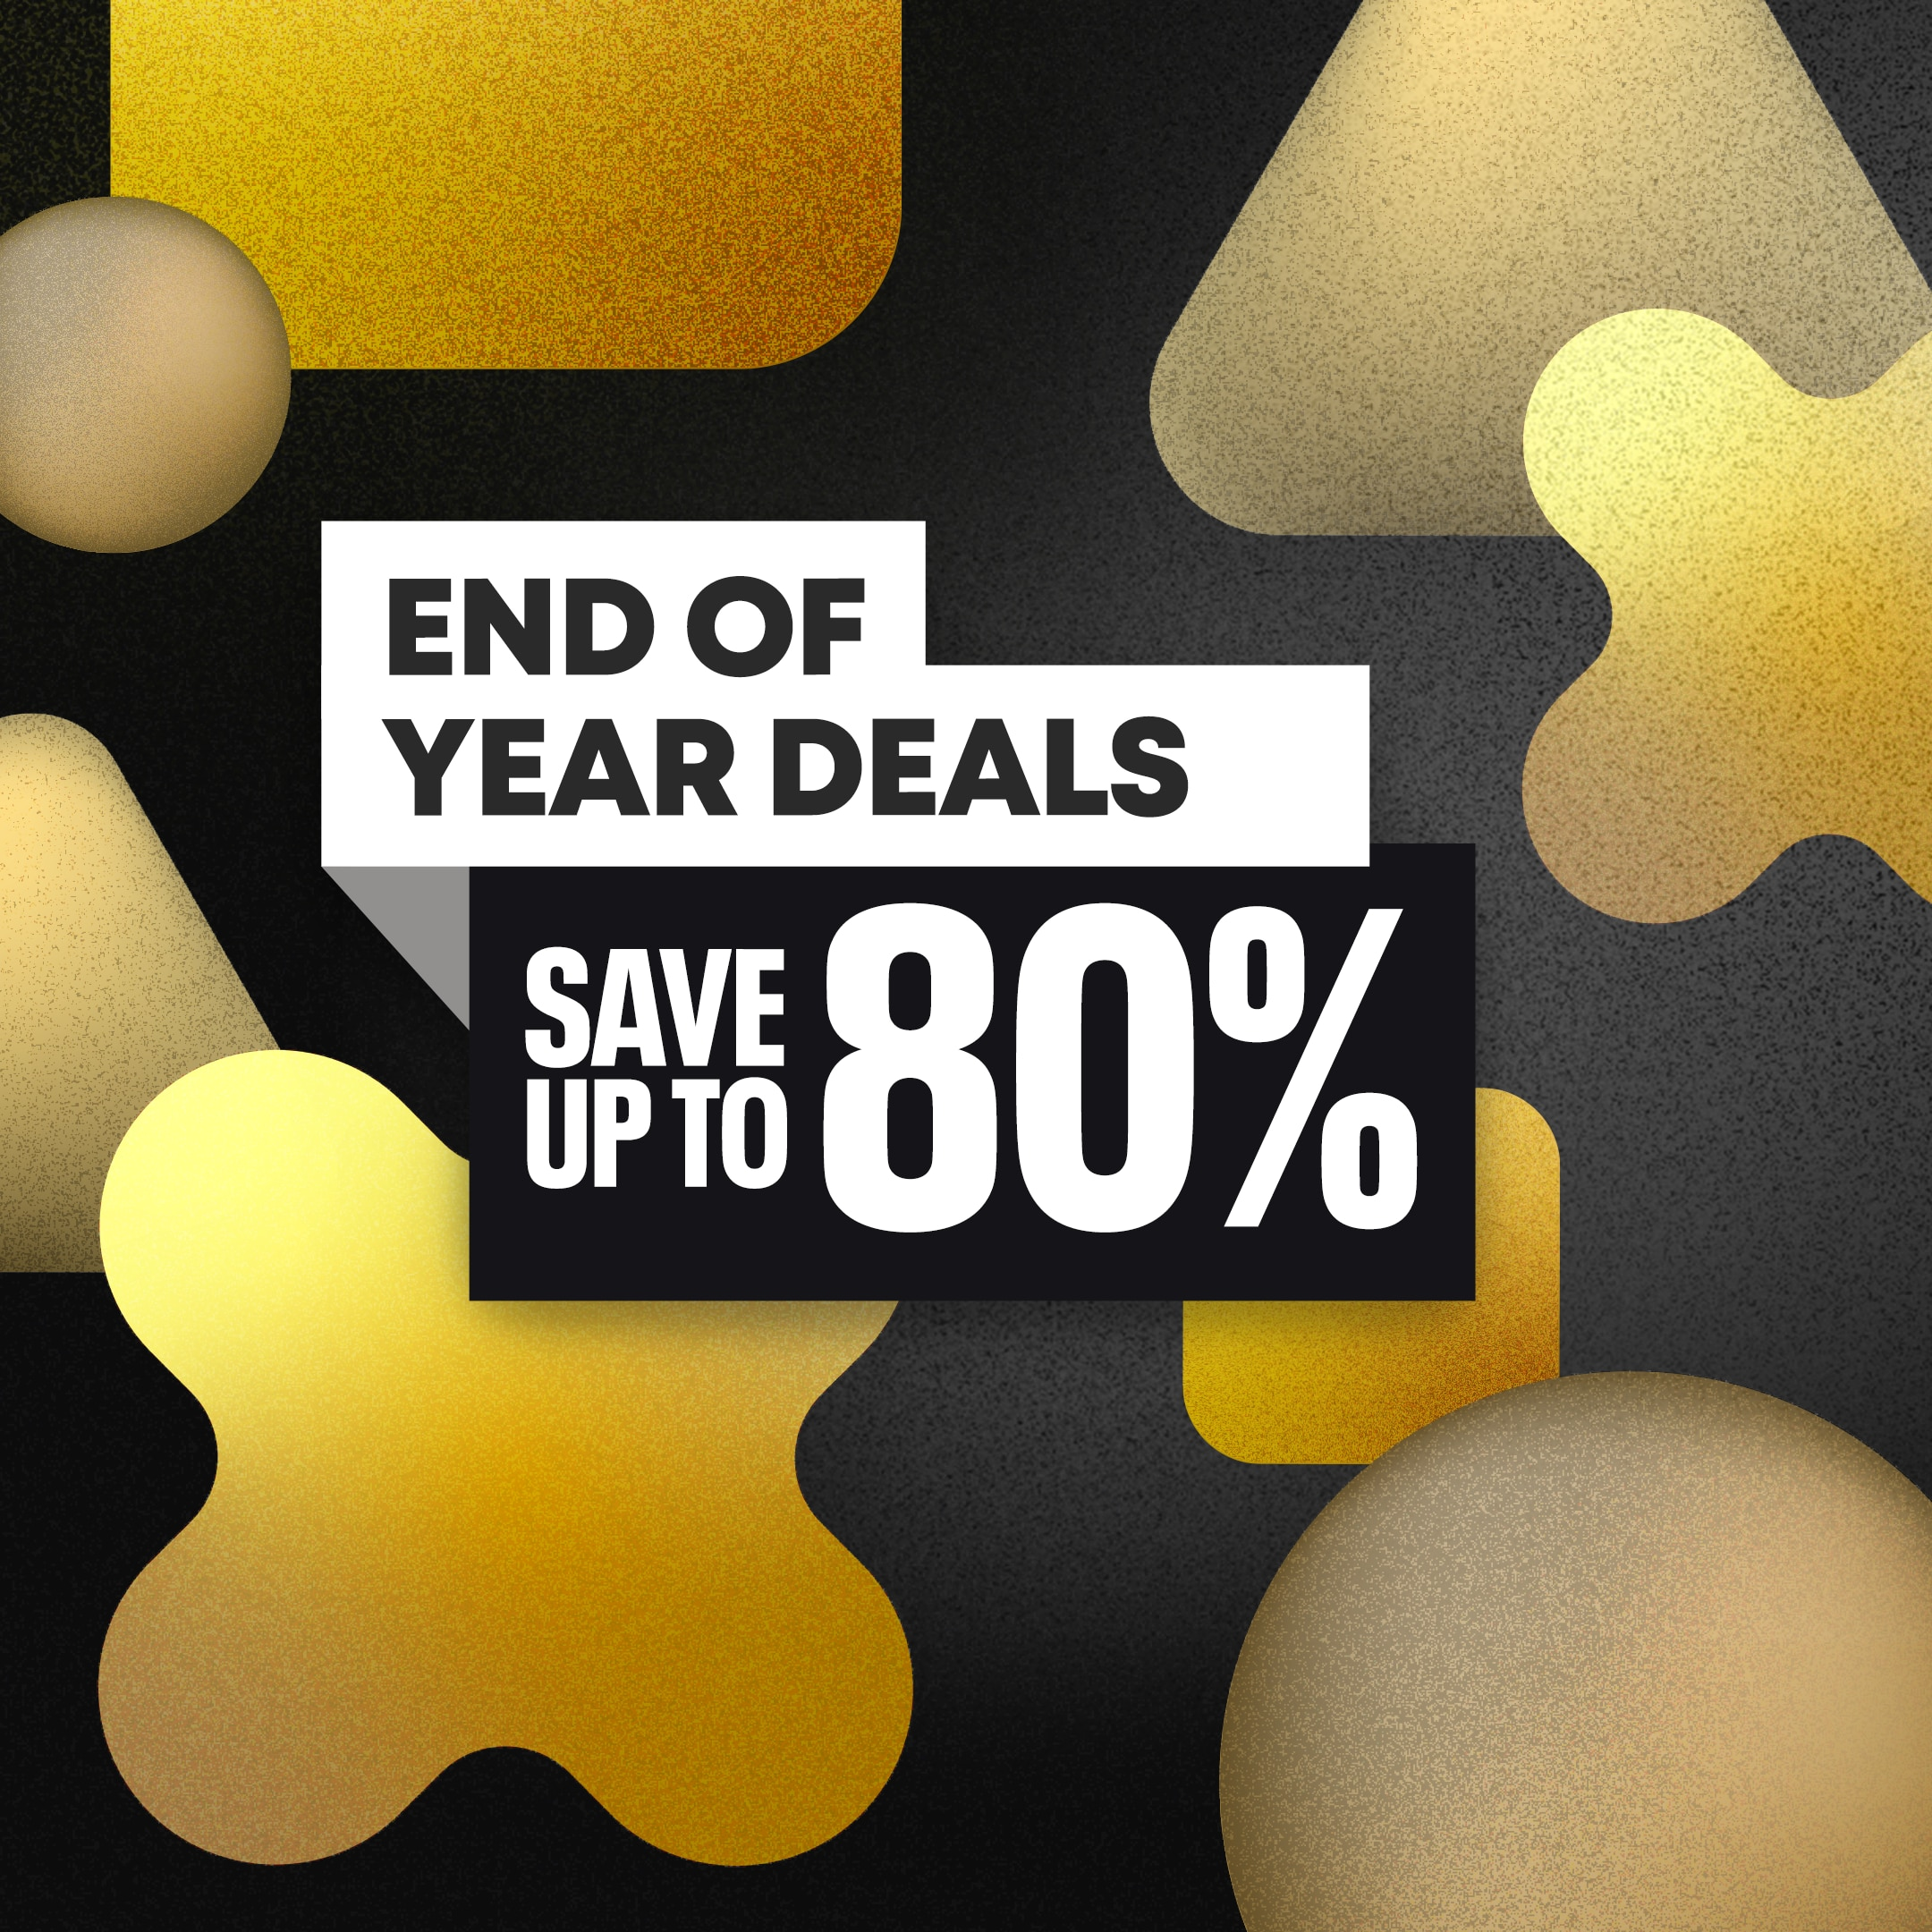 [PROMO] End of Year Deals 20 - WM_WH1